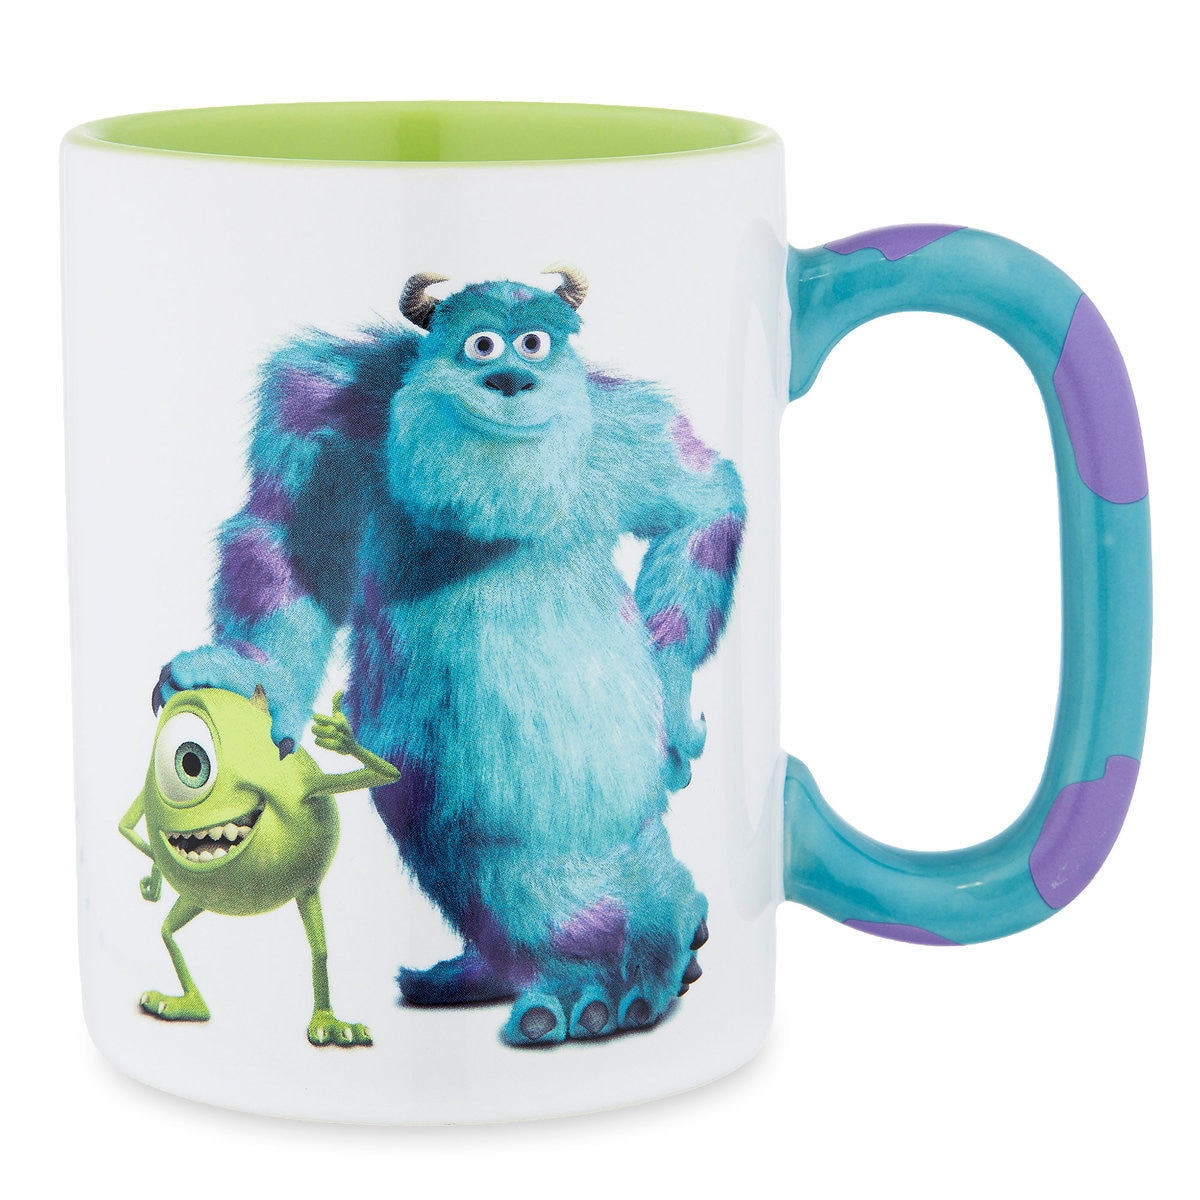 2ecd9412c21 Product Image of Mike Wazowski and Sulley Mug - Monsters